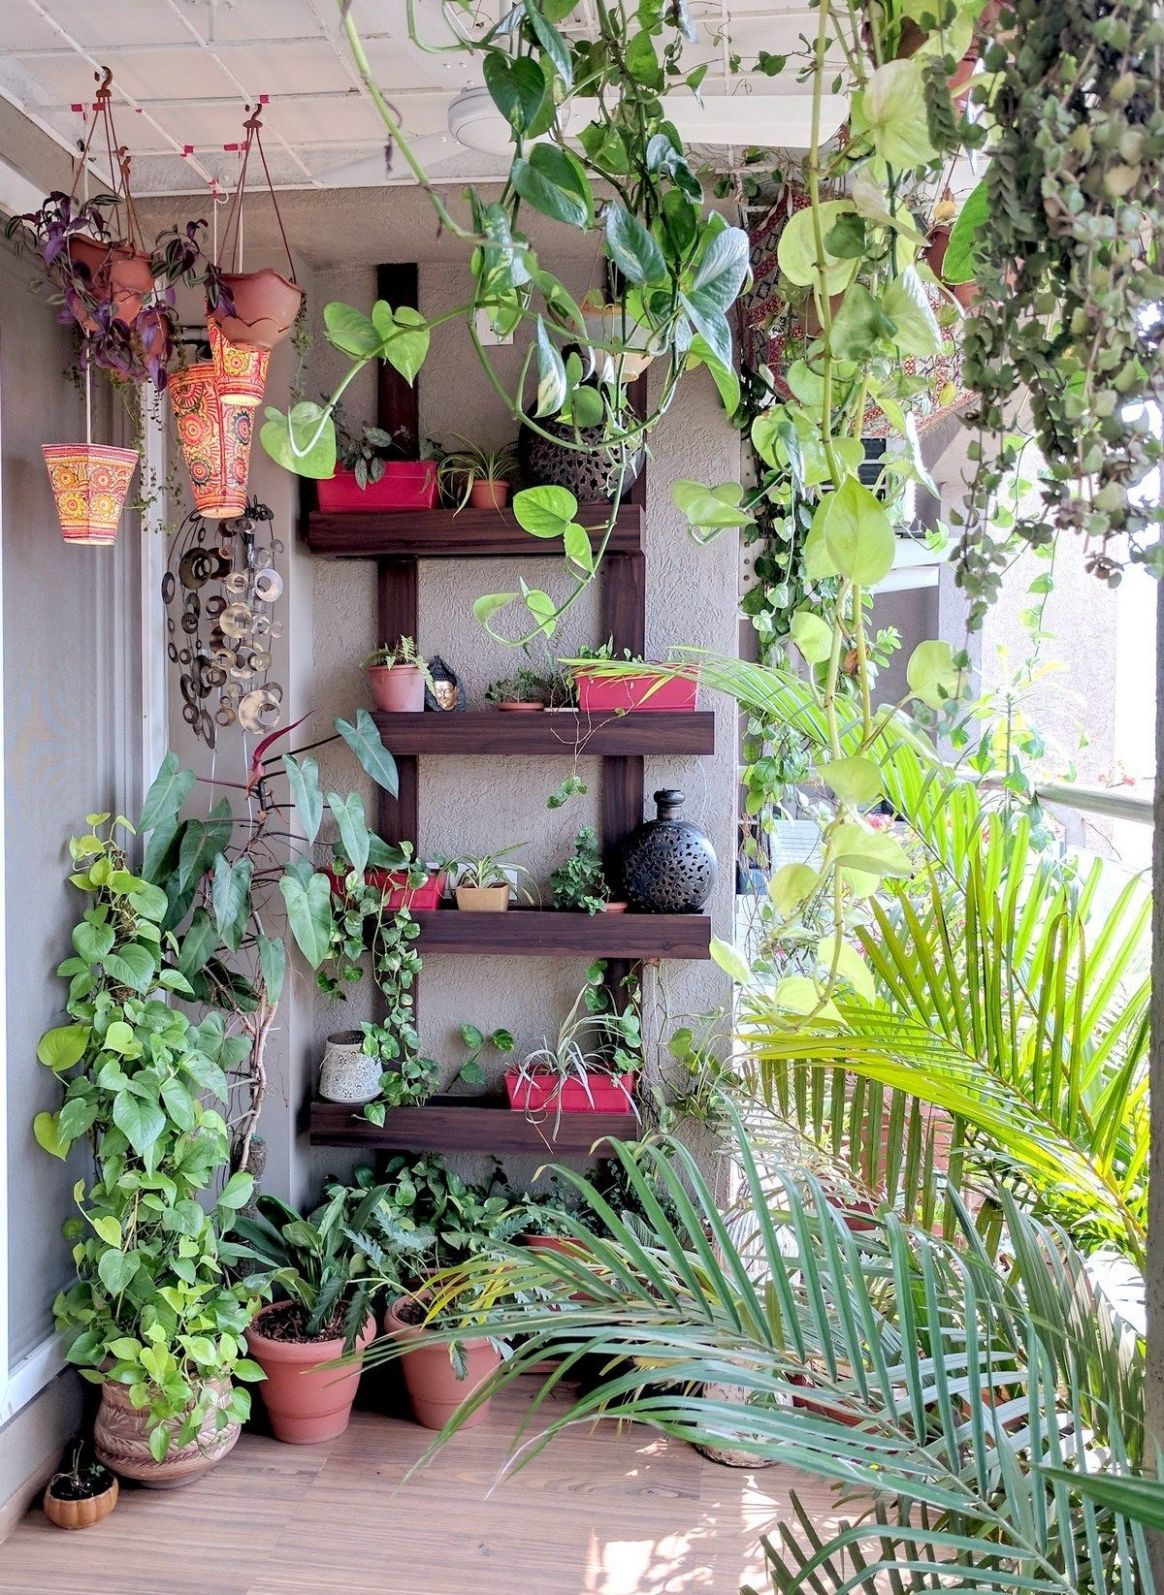 A Balcony Garden In Mumbai: Terrace Reveal (With images) | Patio ...